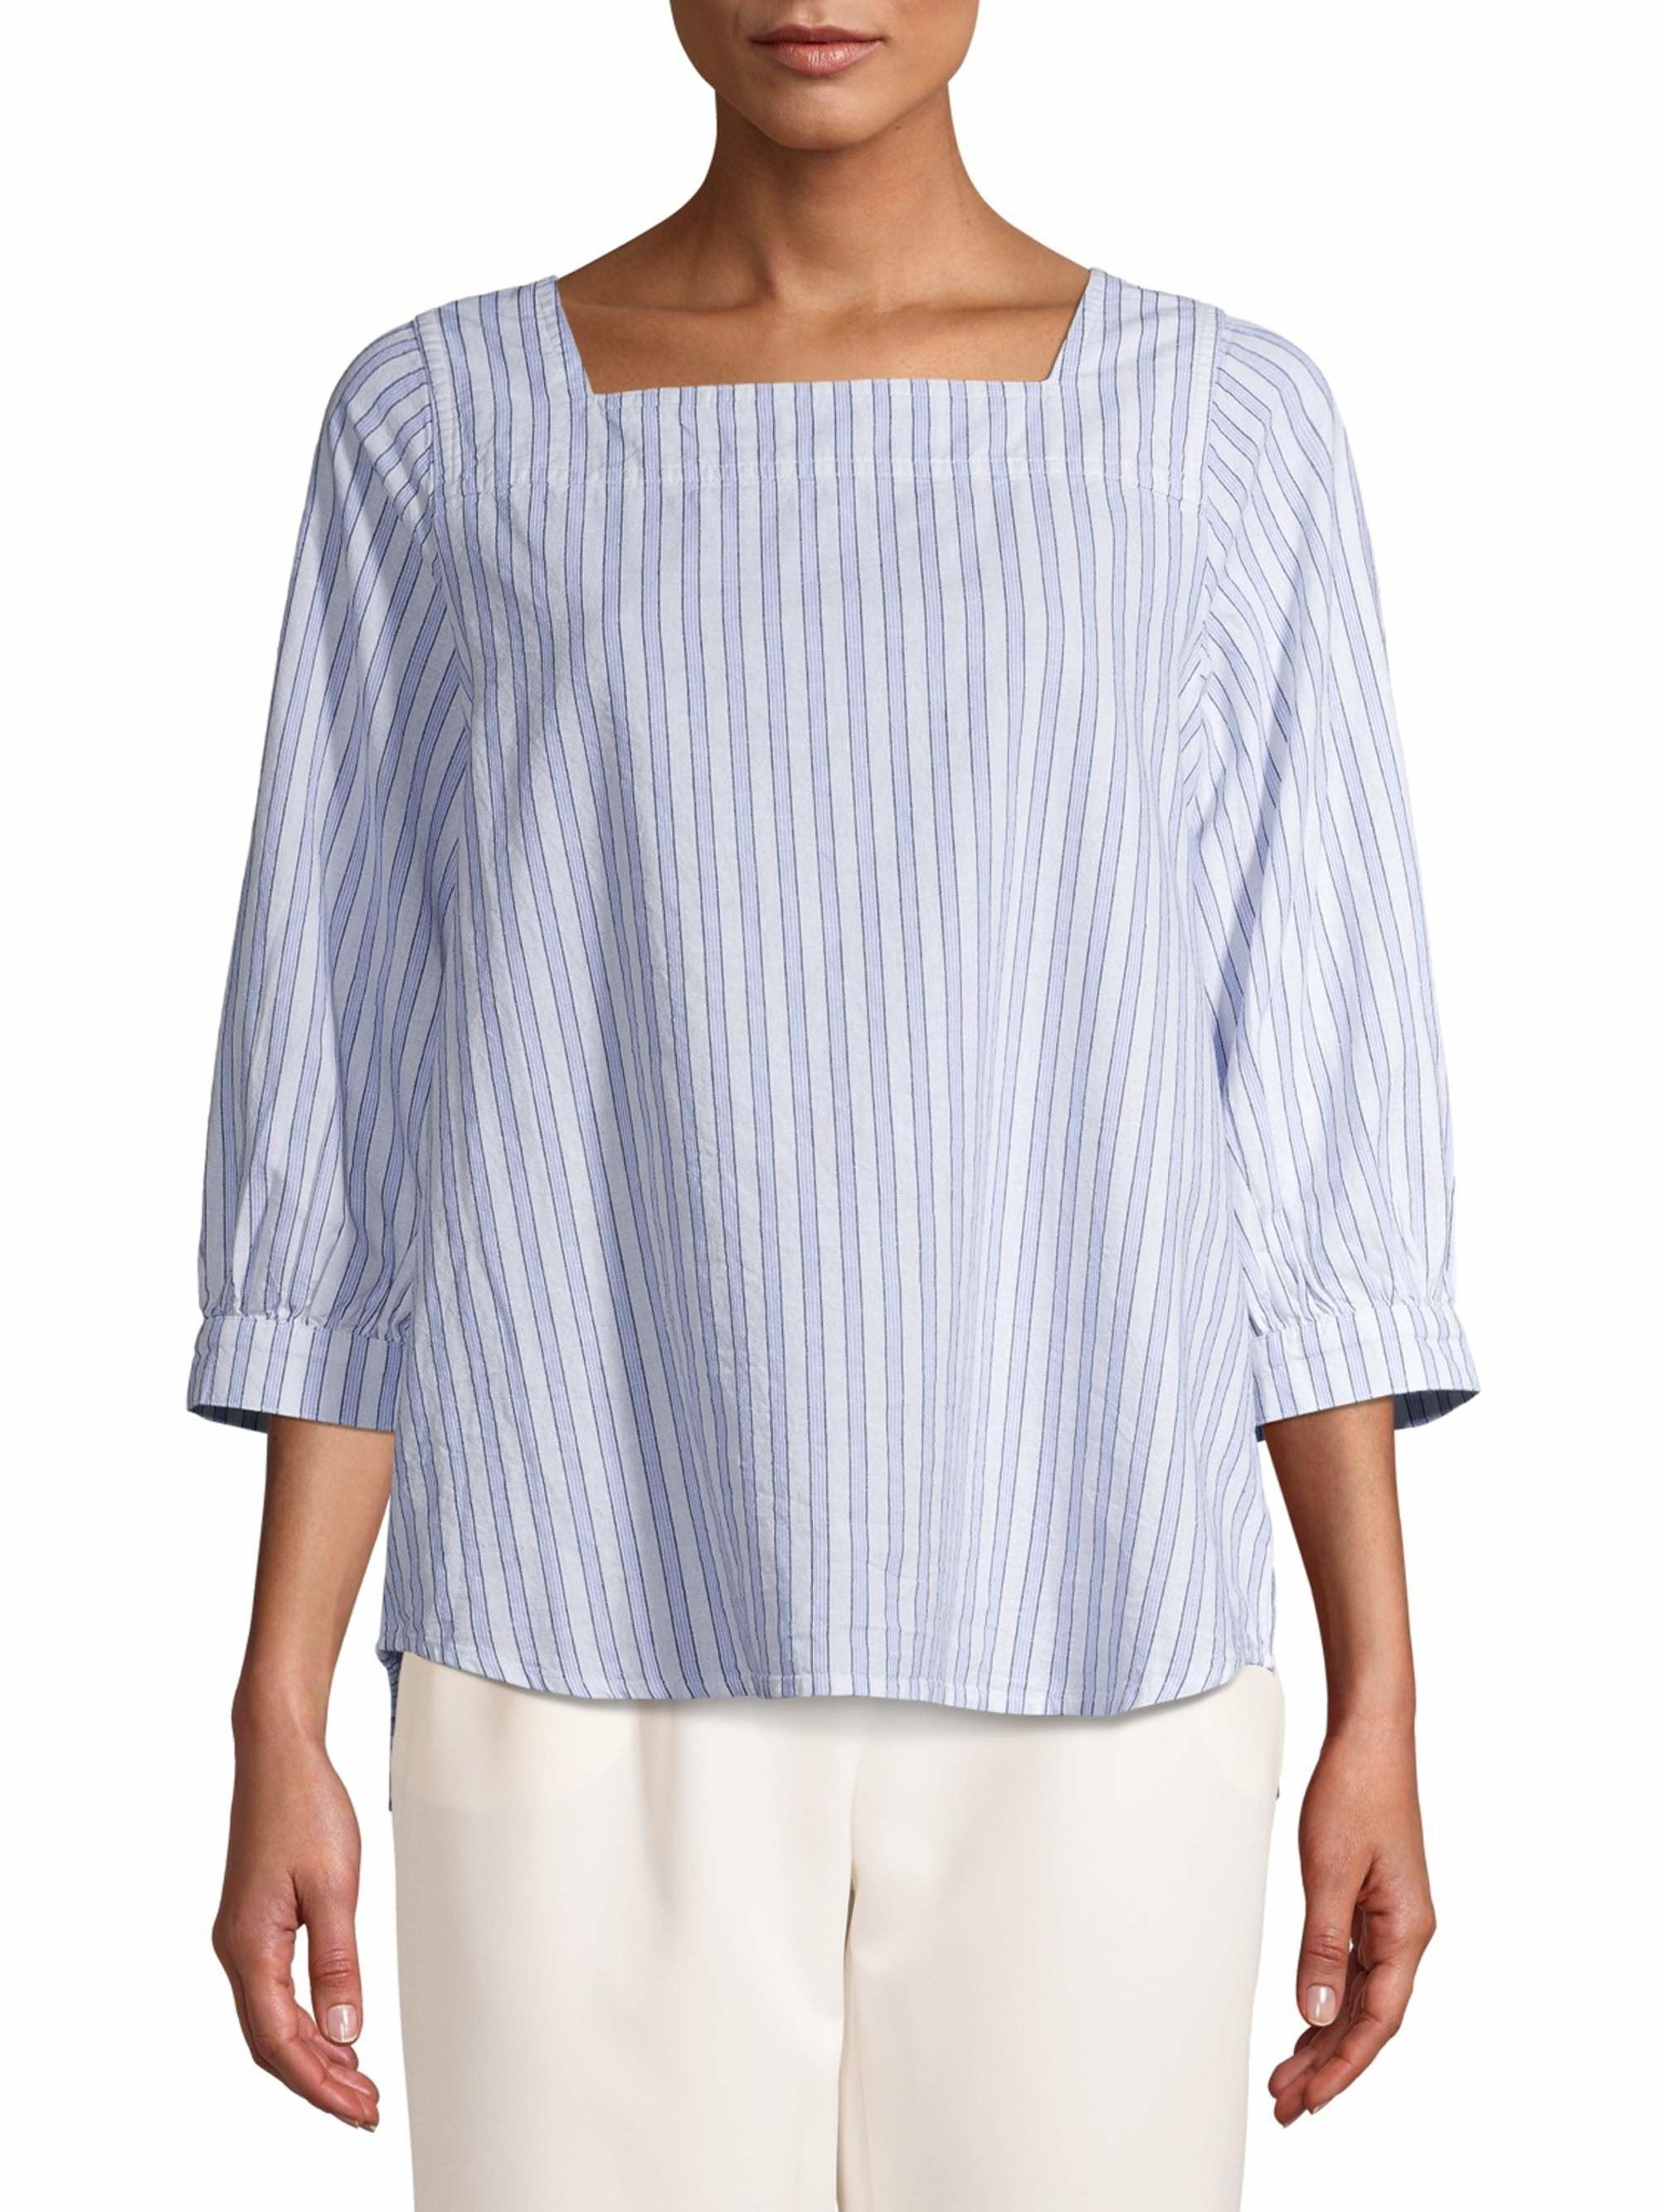 The blue and white striped blouse